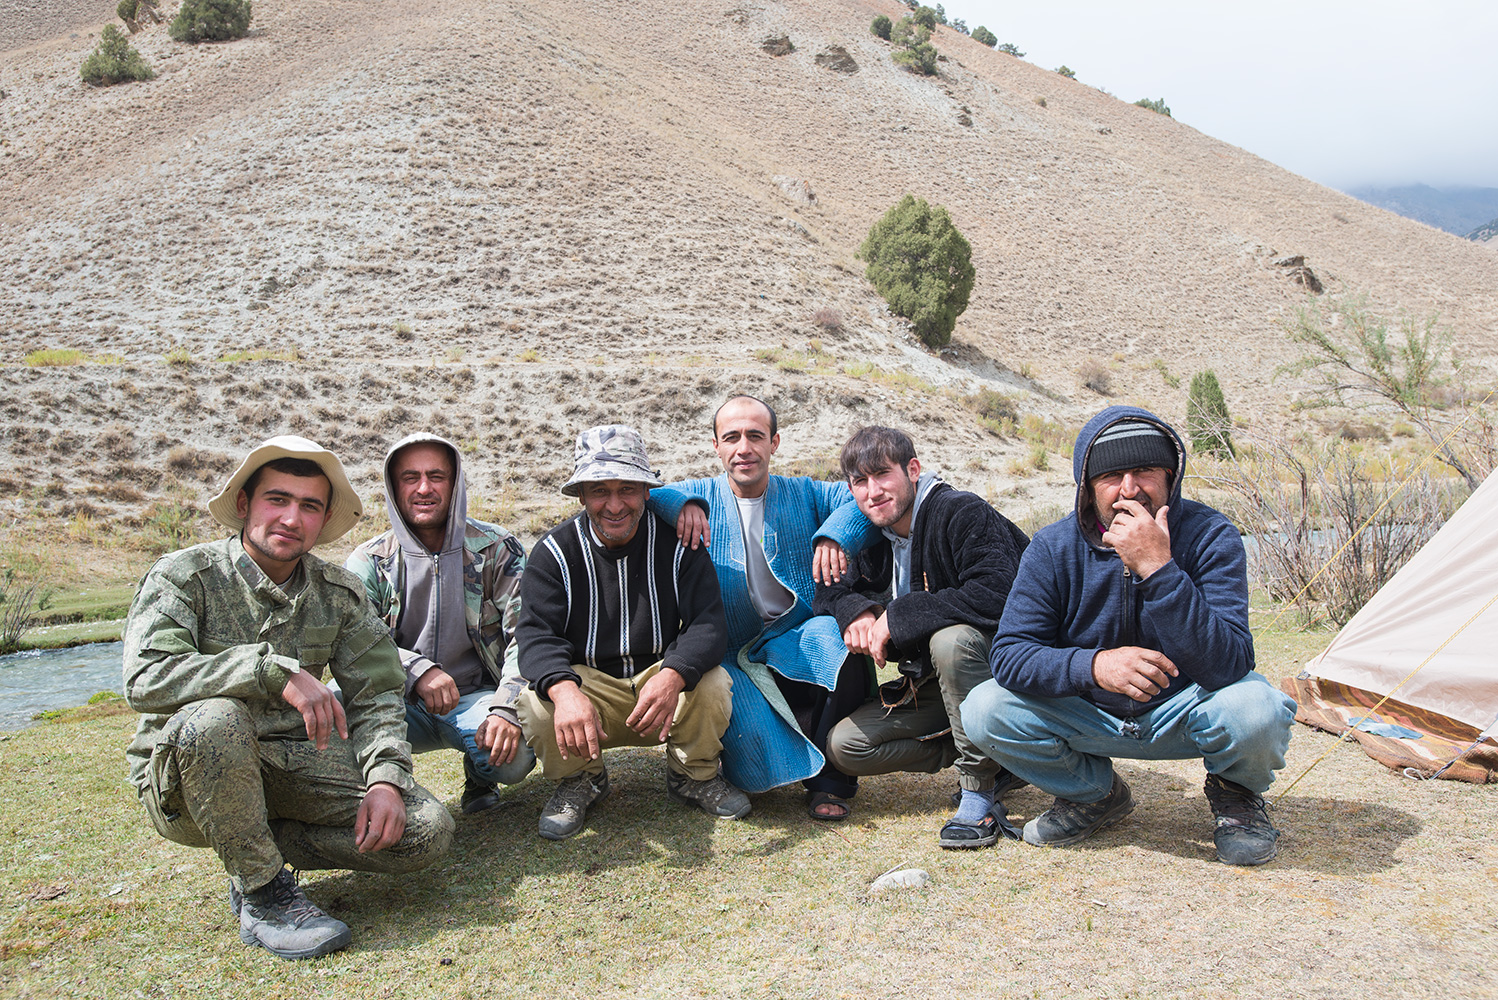 Our Tajik crew at the end of the trek